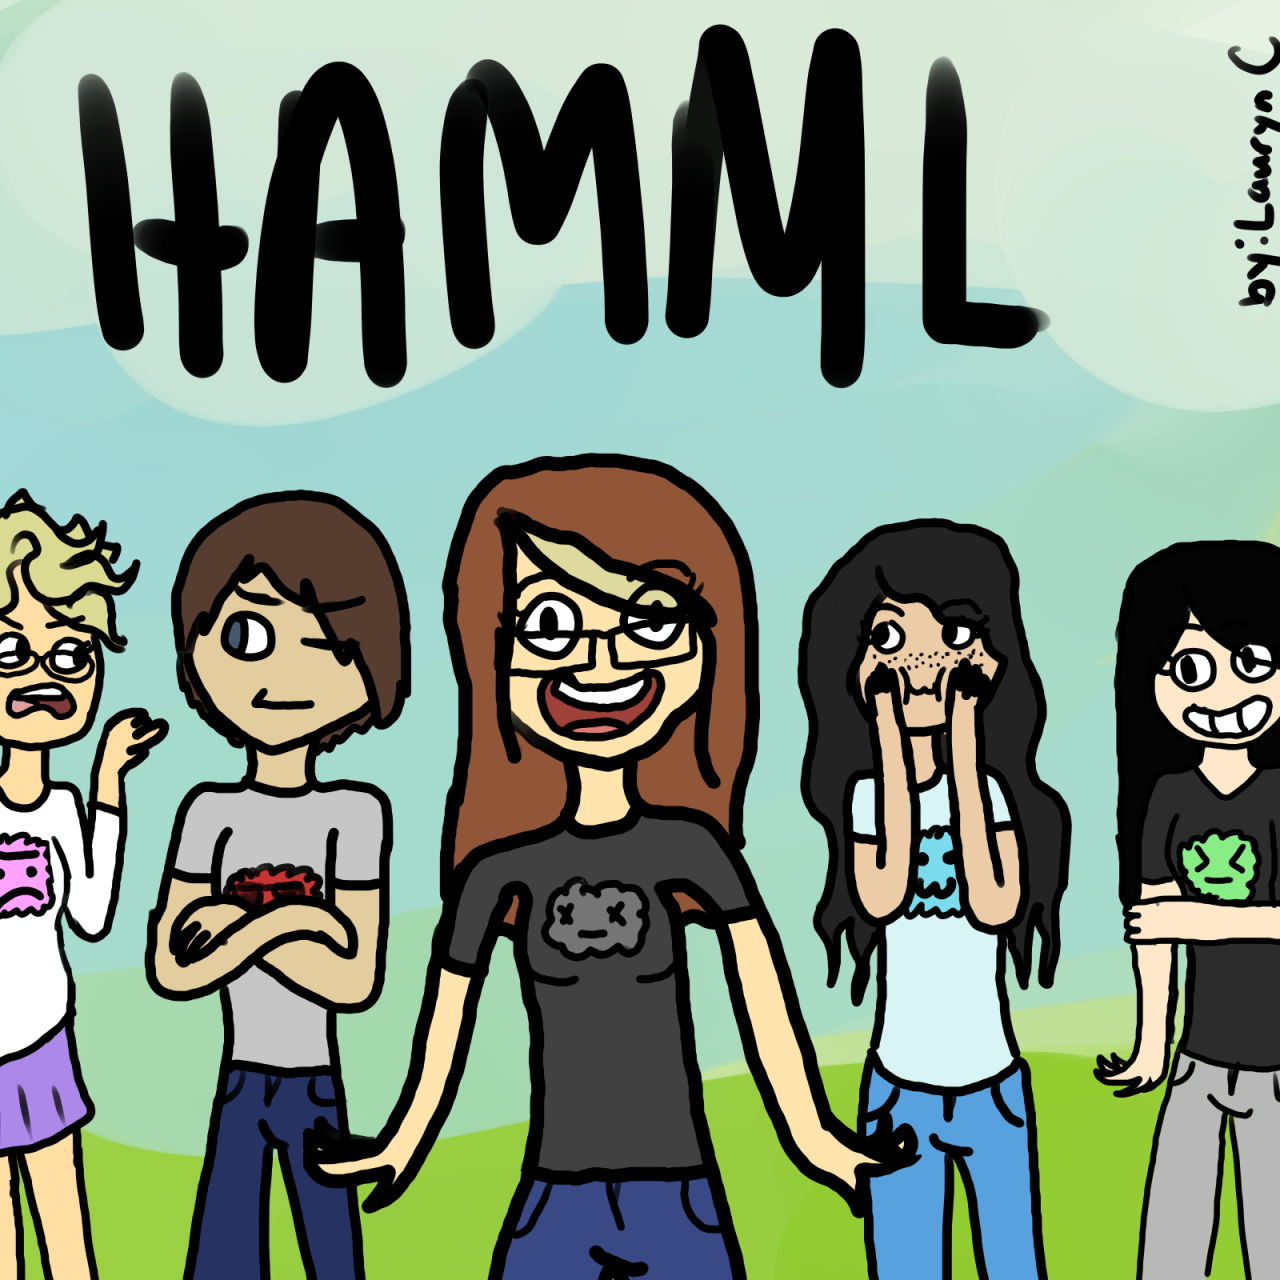 jmx-galaxy:  NEW WEBCOMIC! HAMML! I will be posting a new page every so often when i can get this done. (its a little bit like homestuck but i swear i won't rip anything off) These are all girls. Thank you very much for reading! RE-BLOG and LIKE please!H: Hailee (middle)A: Aleixa (far right)M: Maddie (right of hailee)M: Maggie (far left)L: Lauryn (left of hailee)